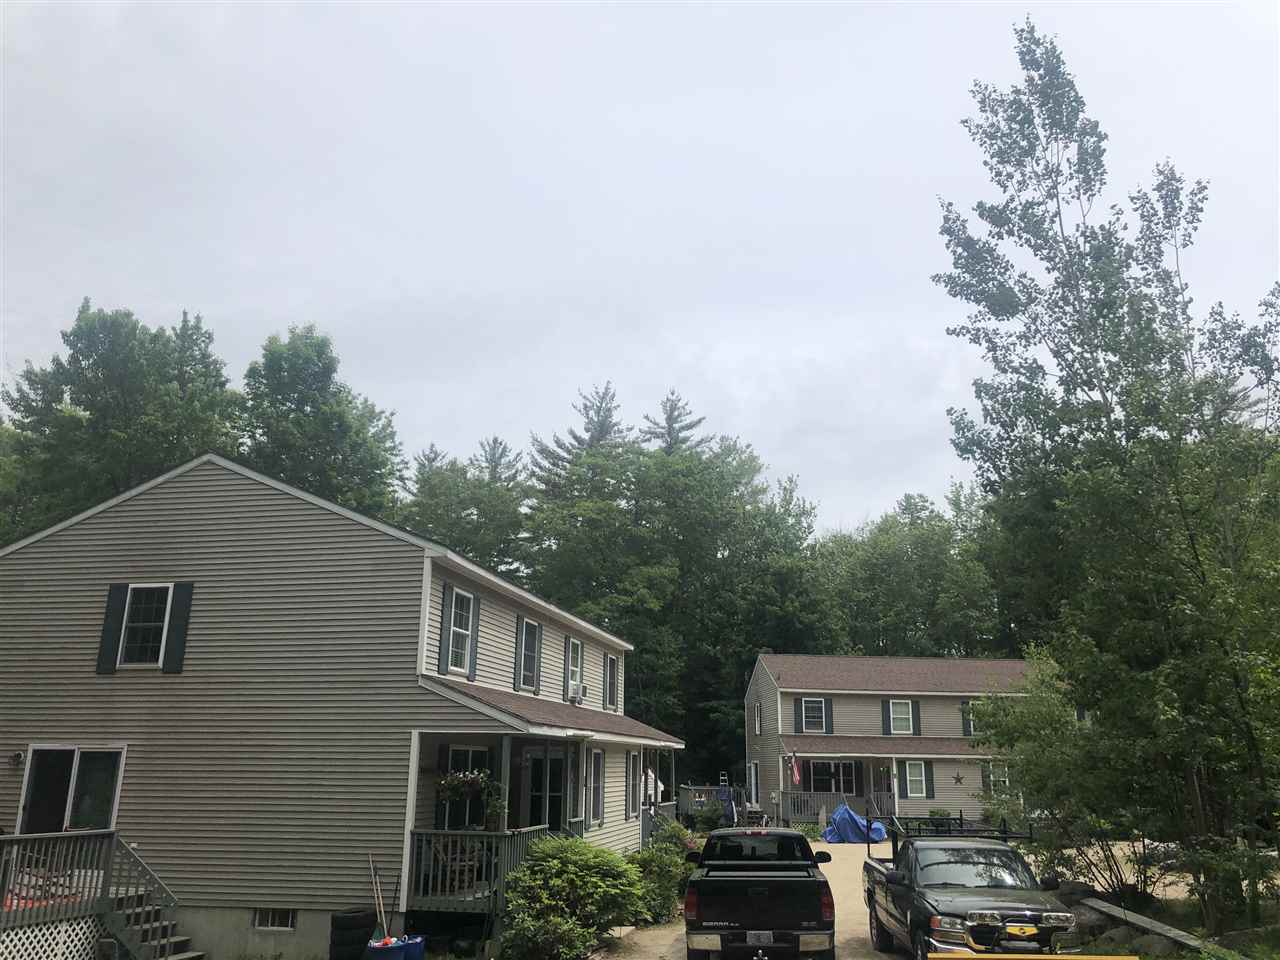 MLS 4789932: 19 Ben Berry Road, Moultonborough NH